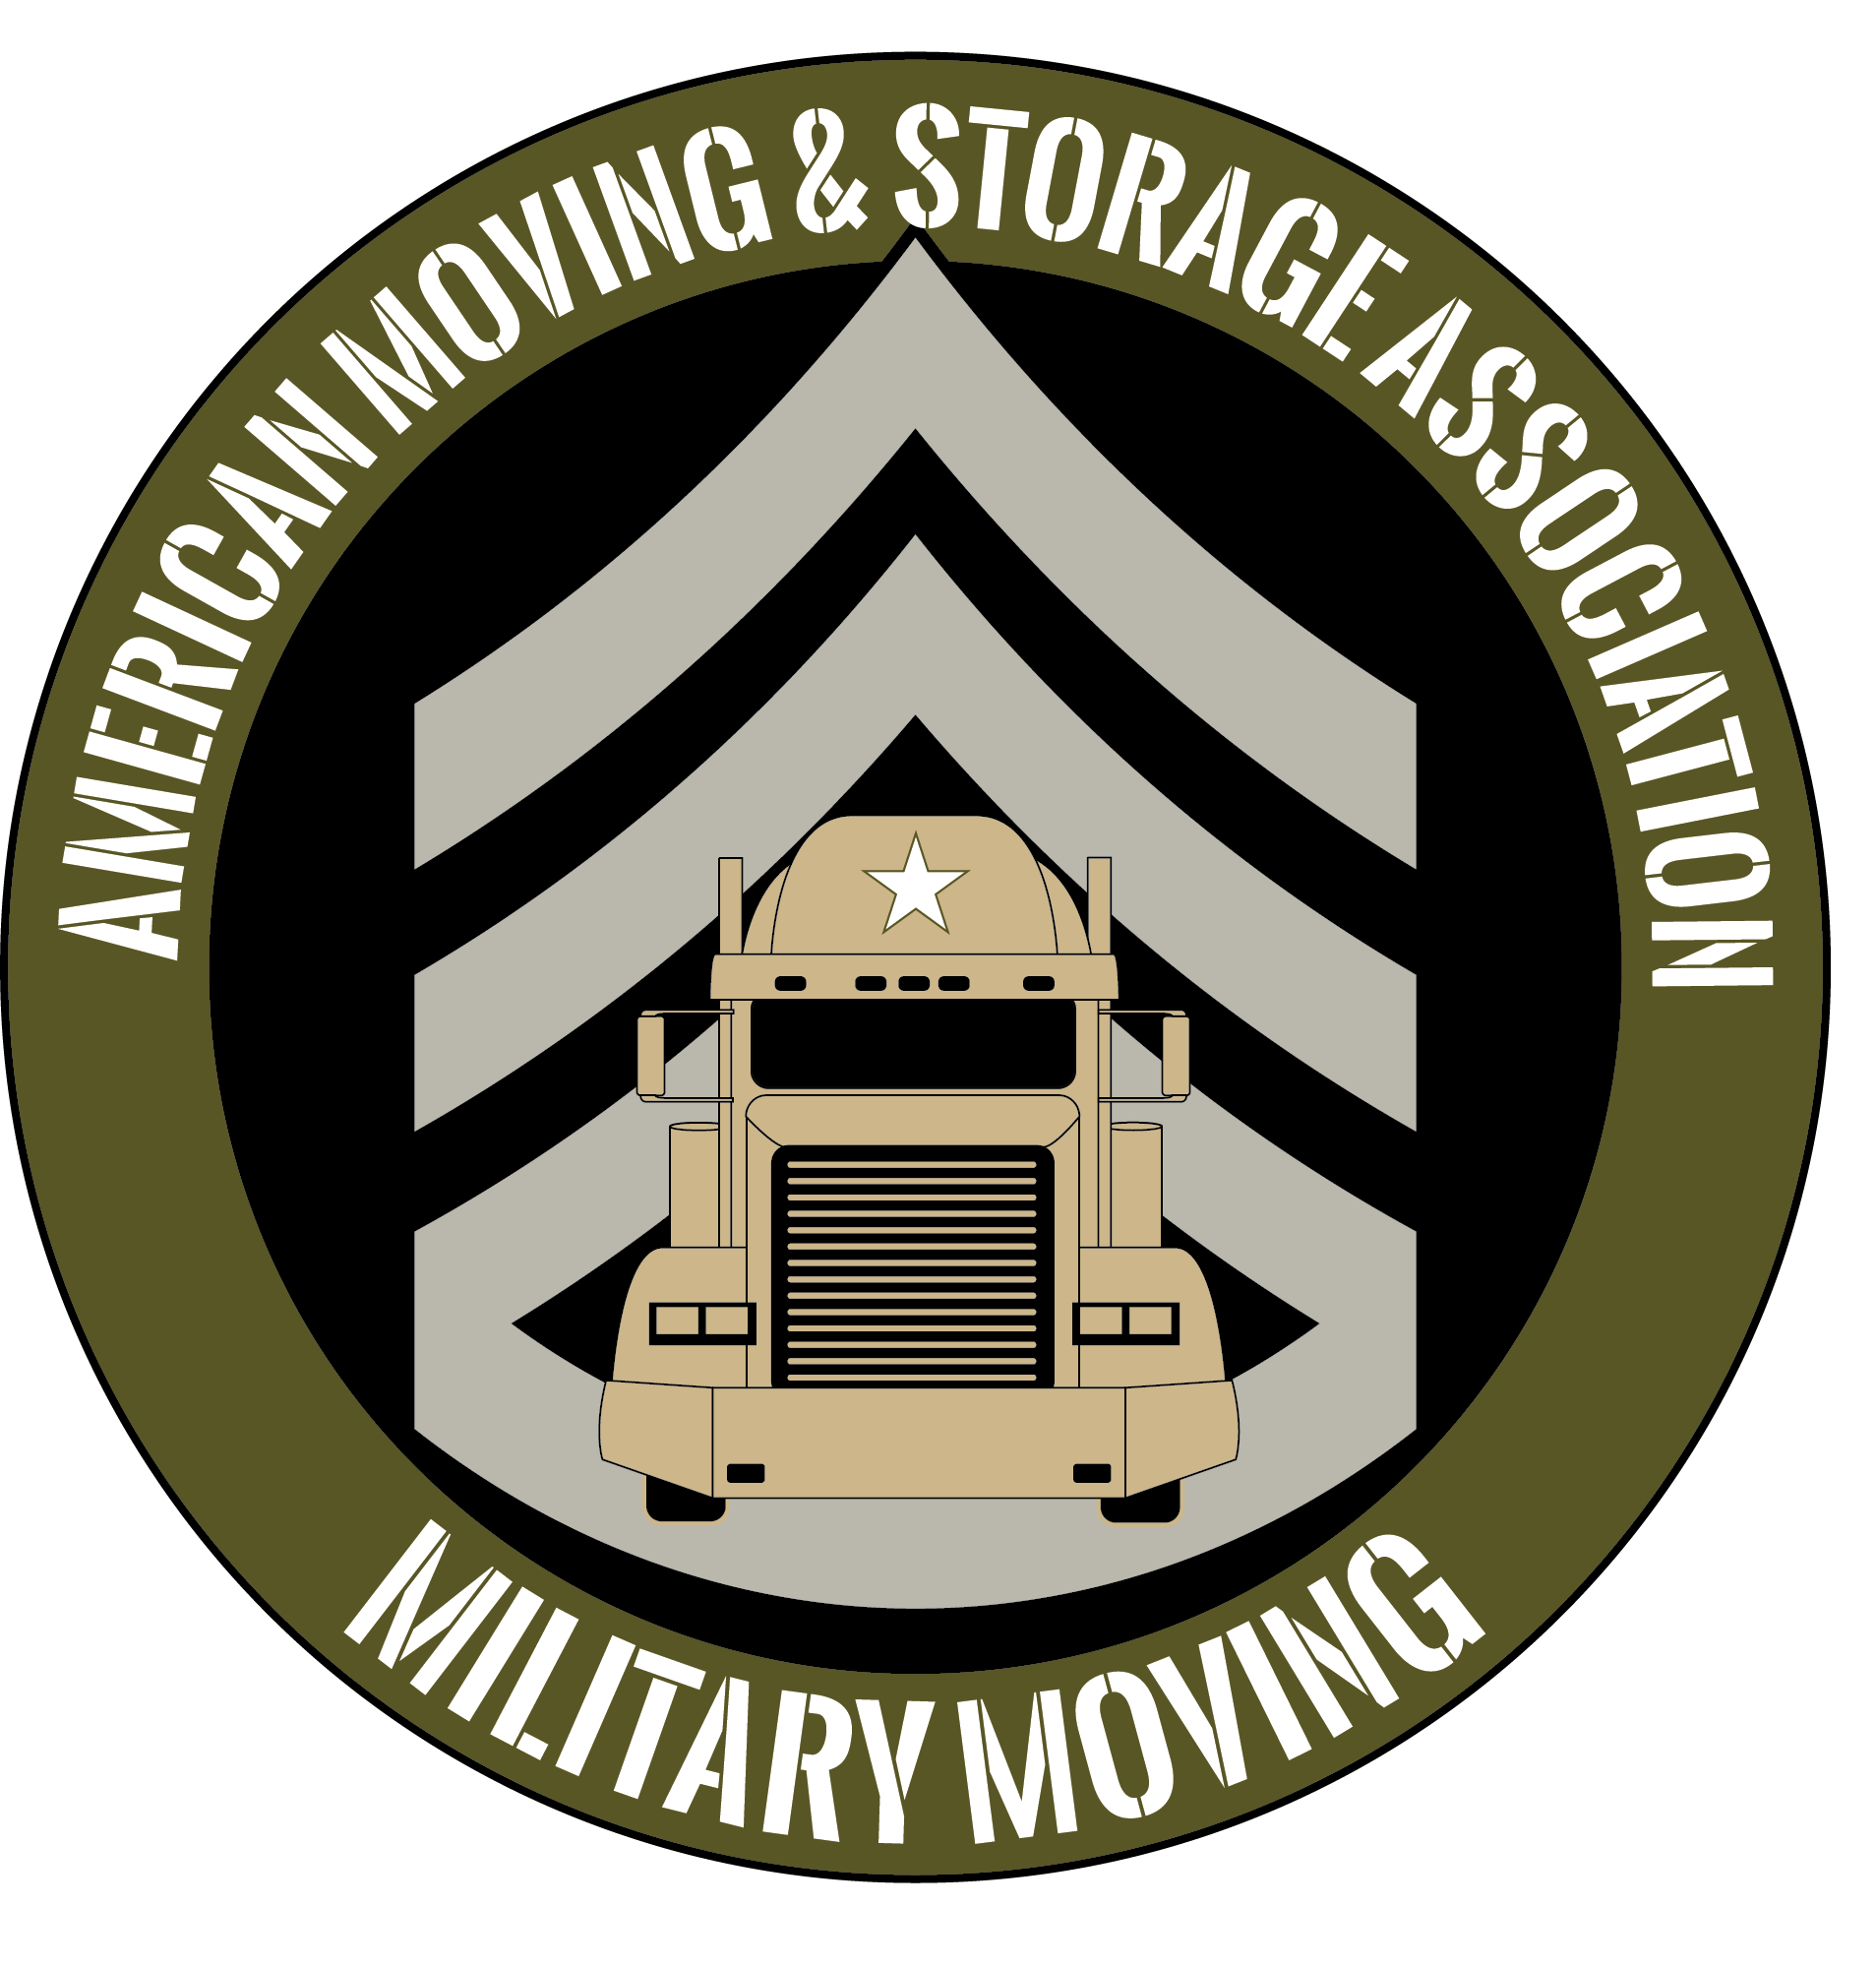 military logo, amsa today november moving #25291